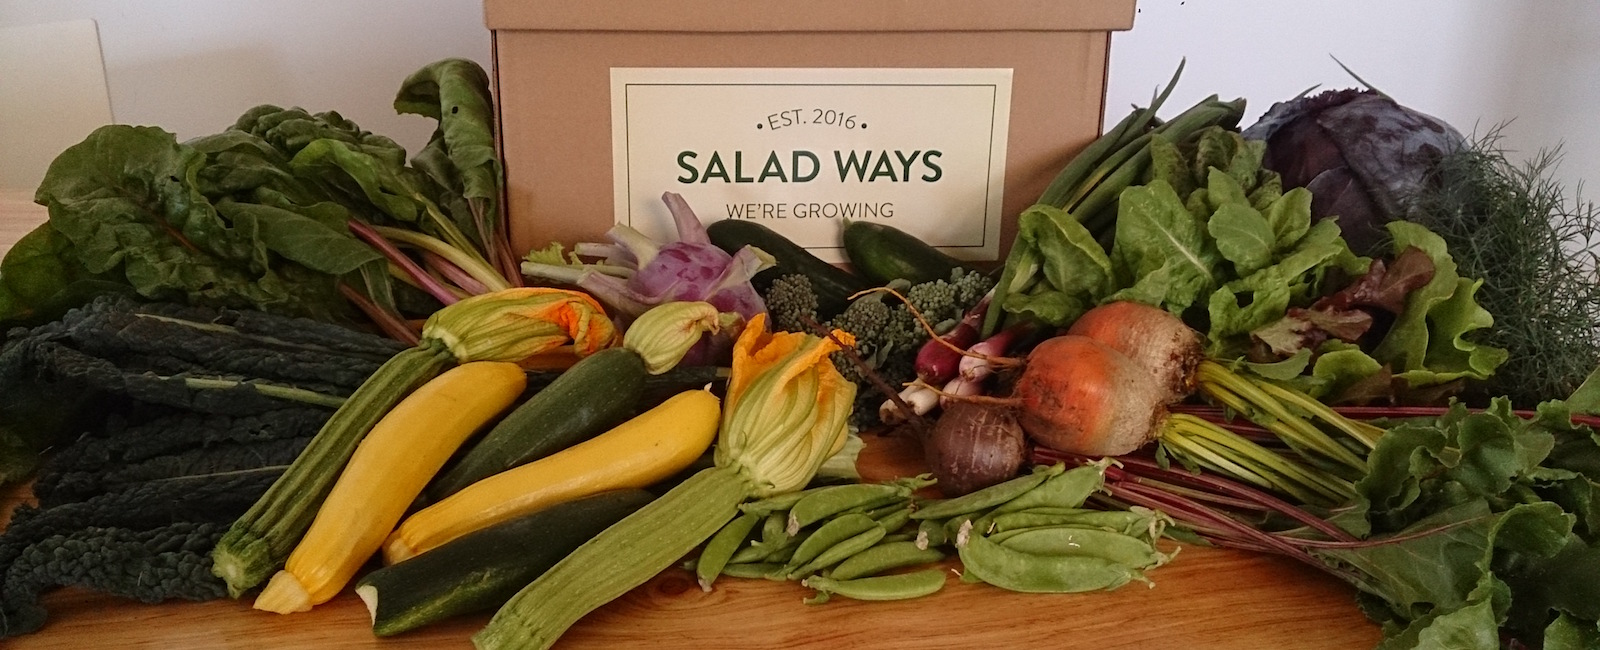 Salad Ways Veggie Box